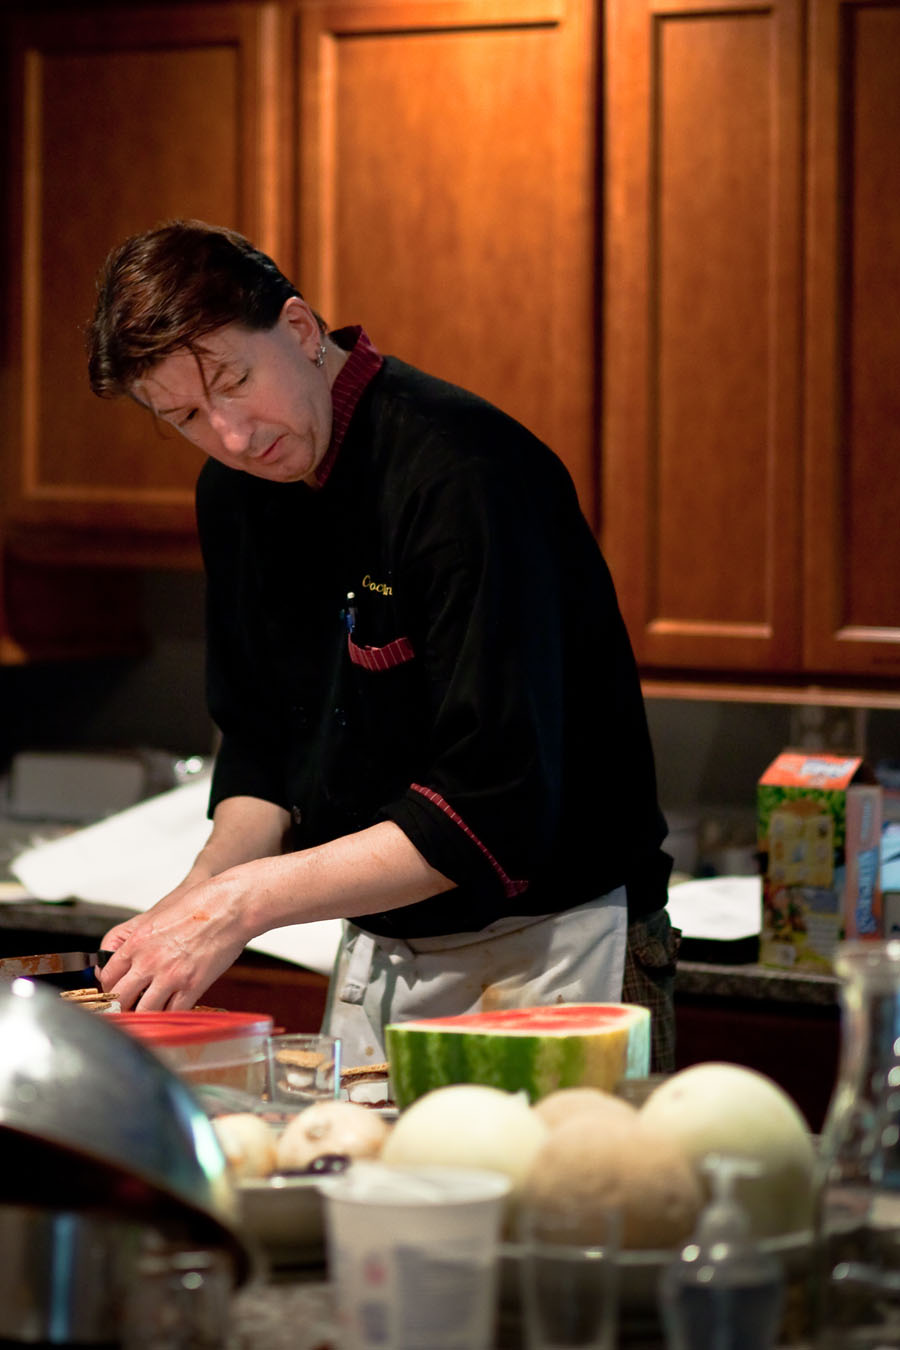 Chef Martin Howard, photo: Cornelia Theimer Gardella